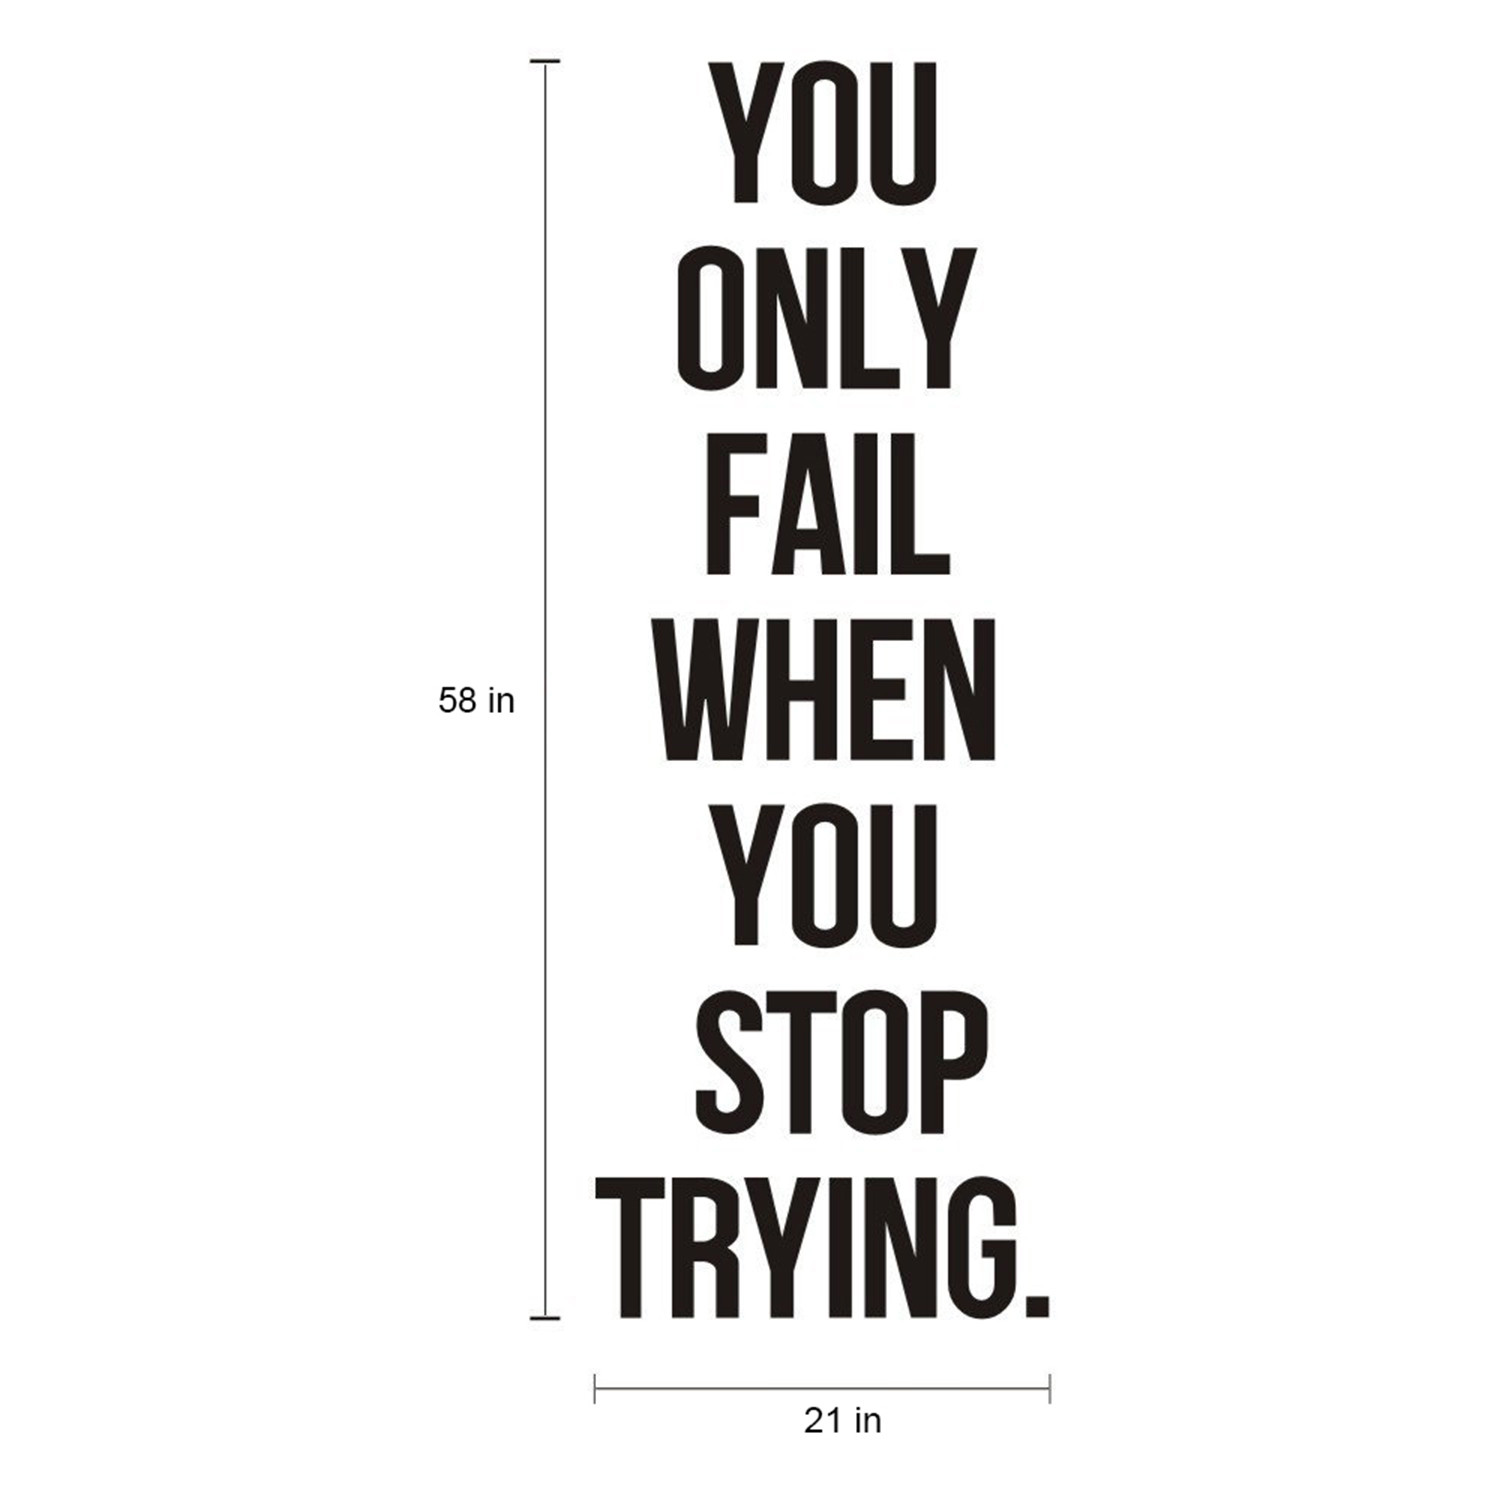 Inspirational Quotes About Failure: You Only Fail When You Stop Trying